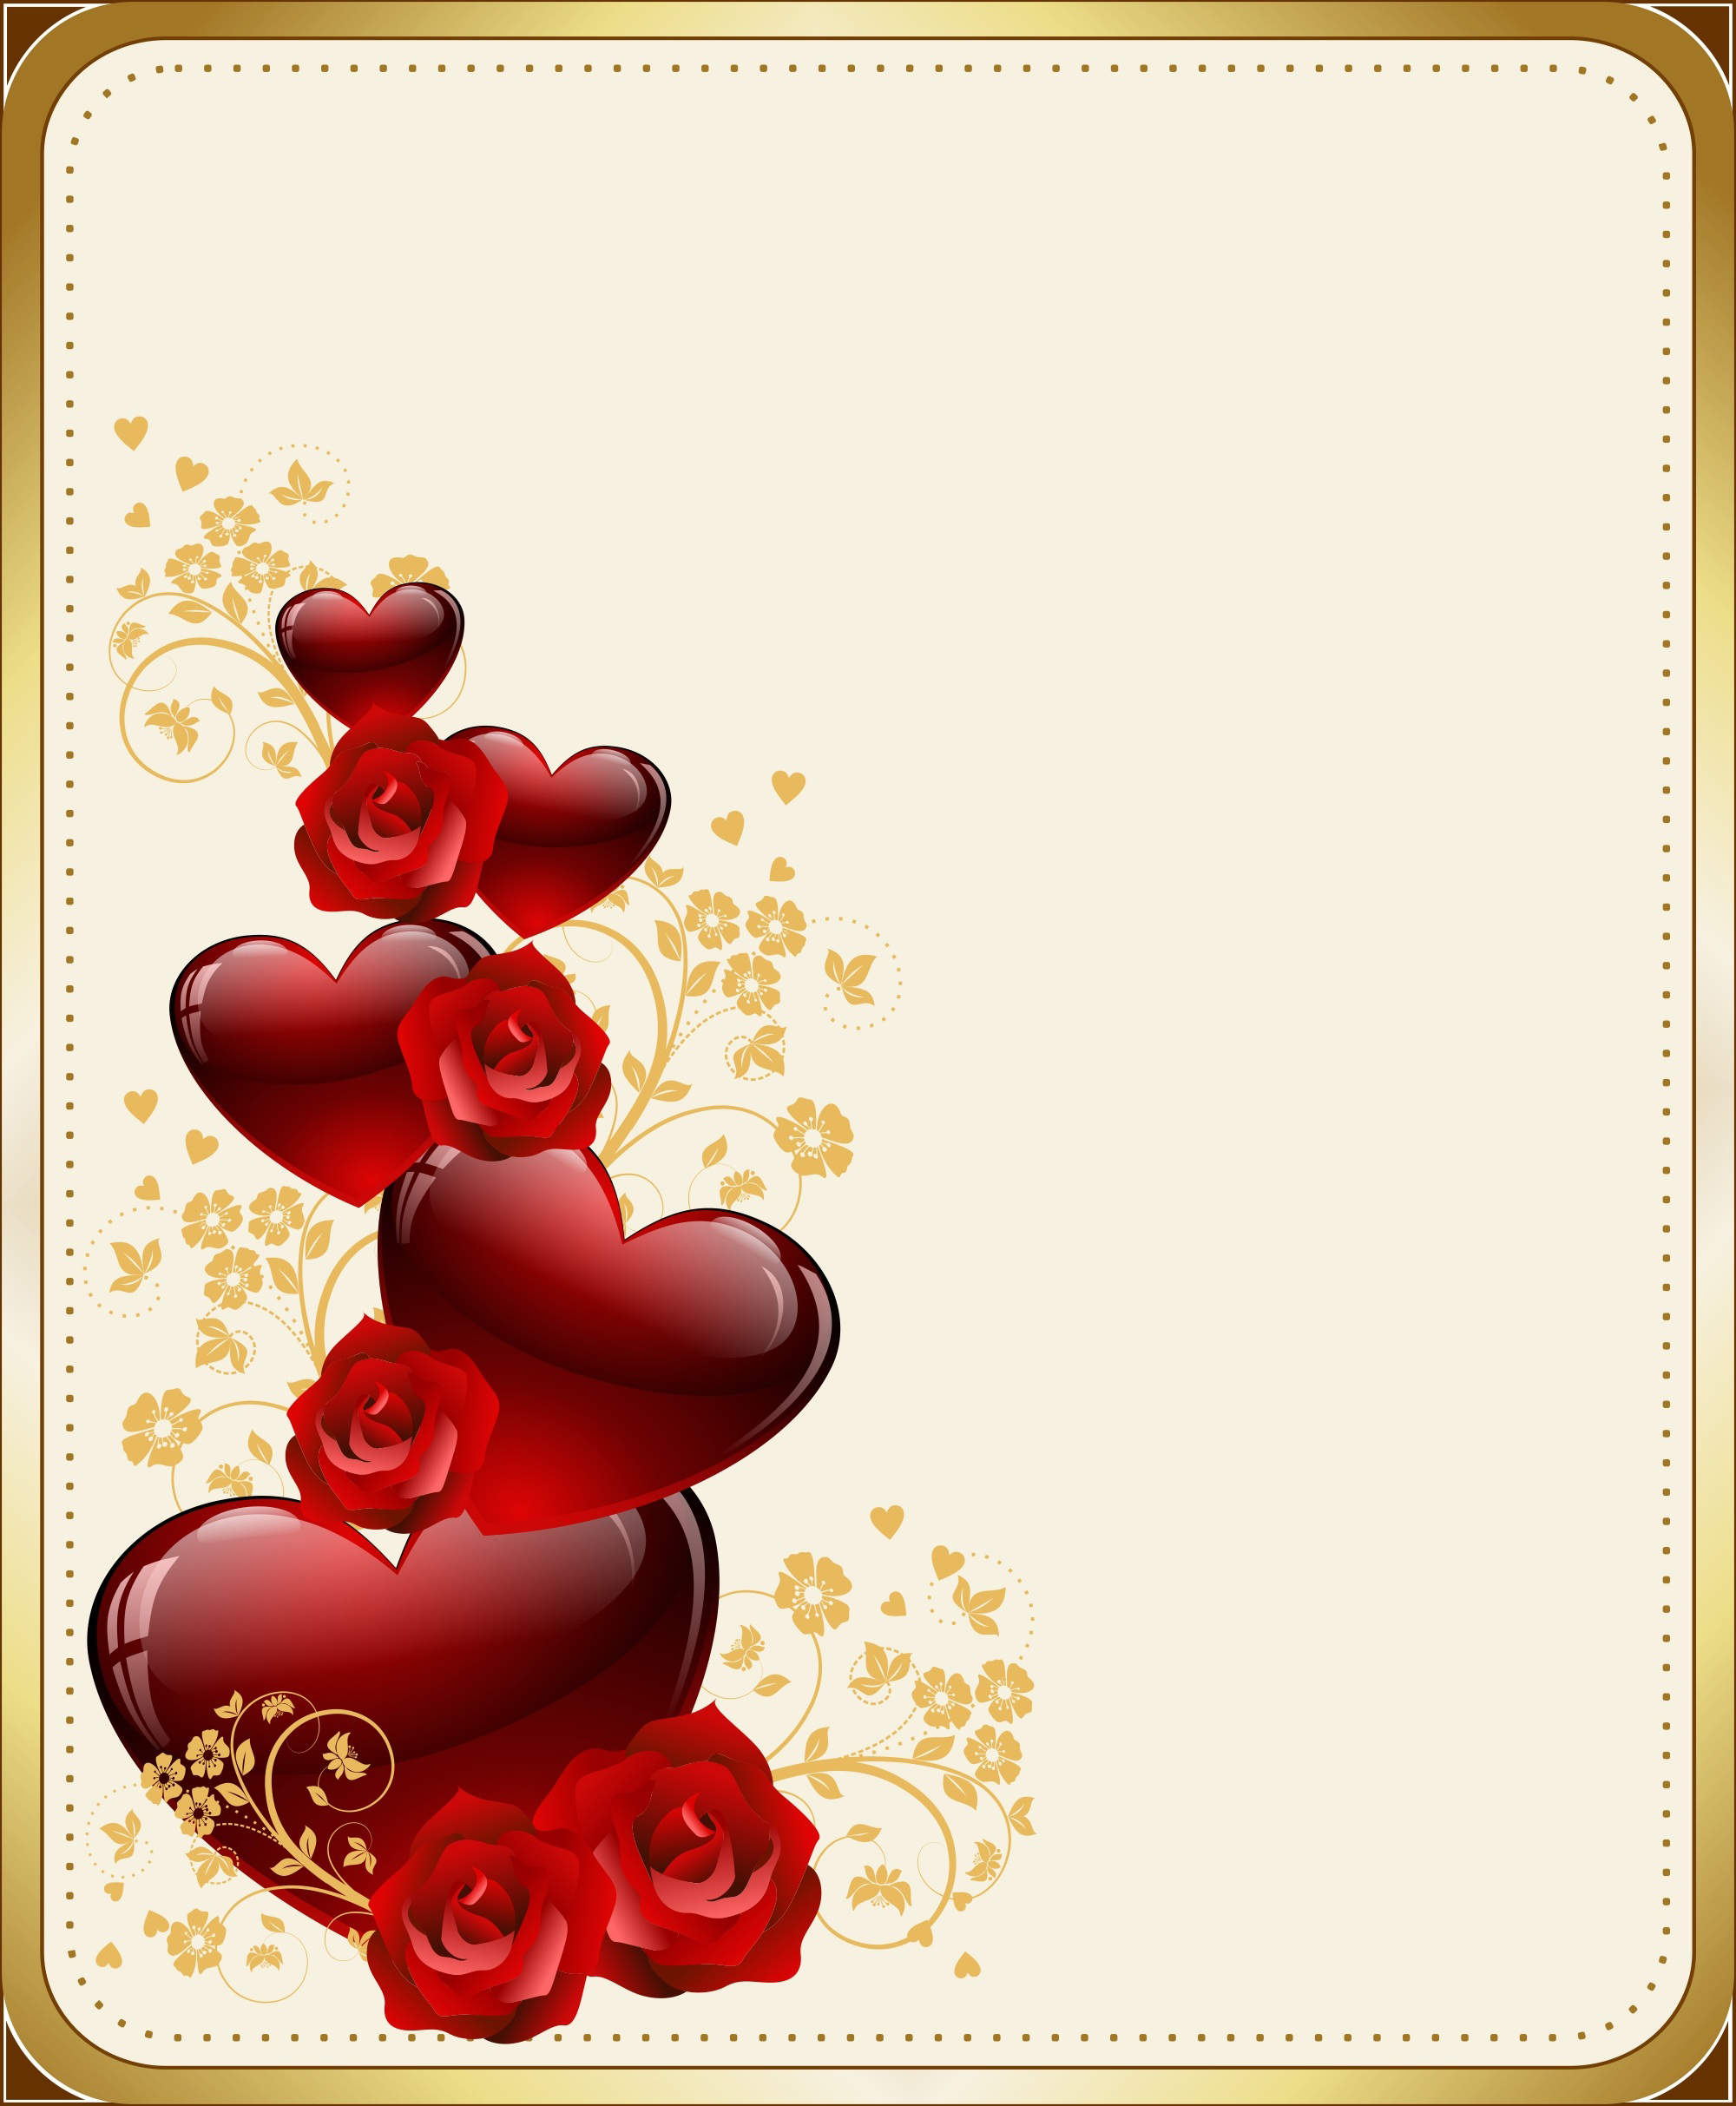 valentines, greeting, romantic, heart, red, roses,